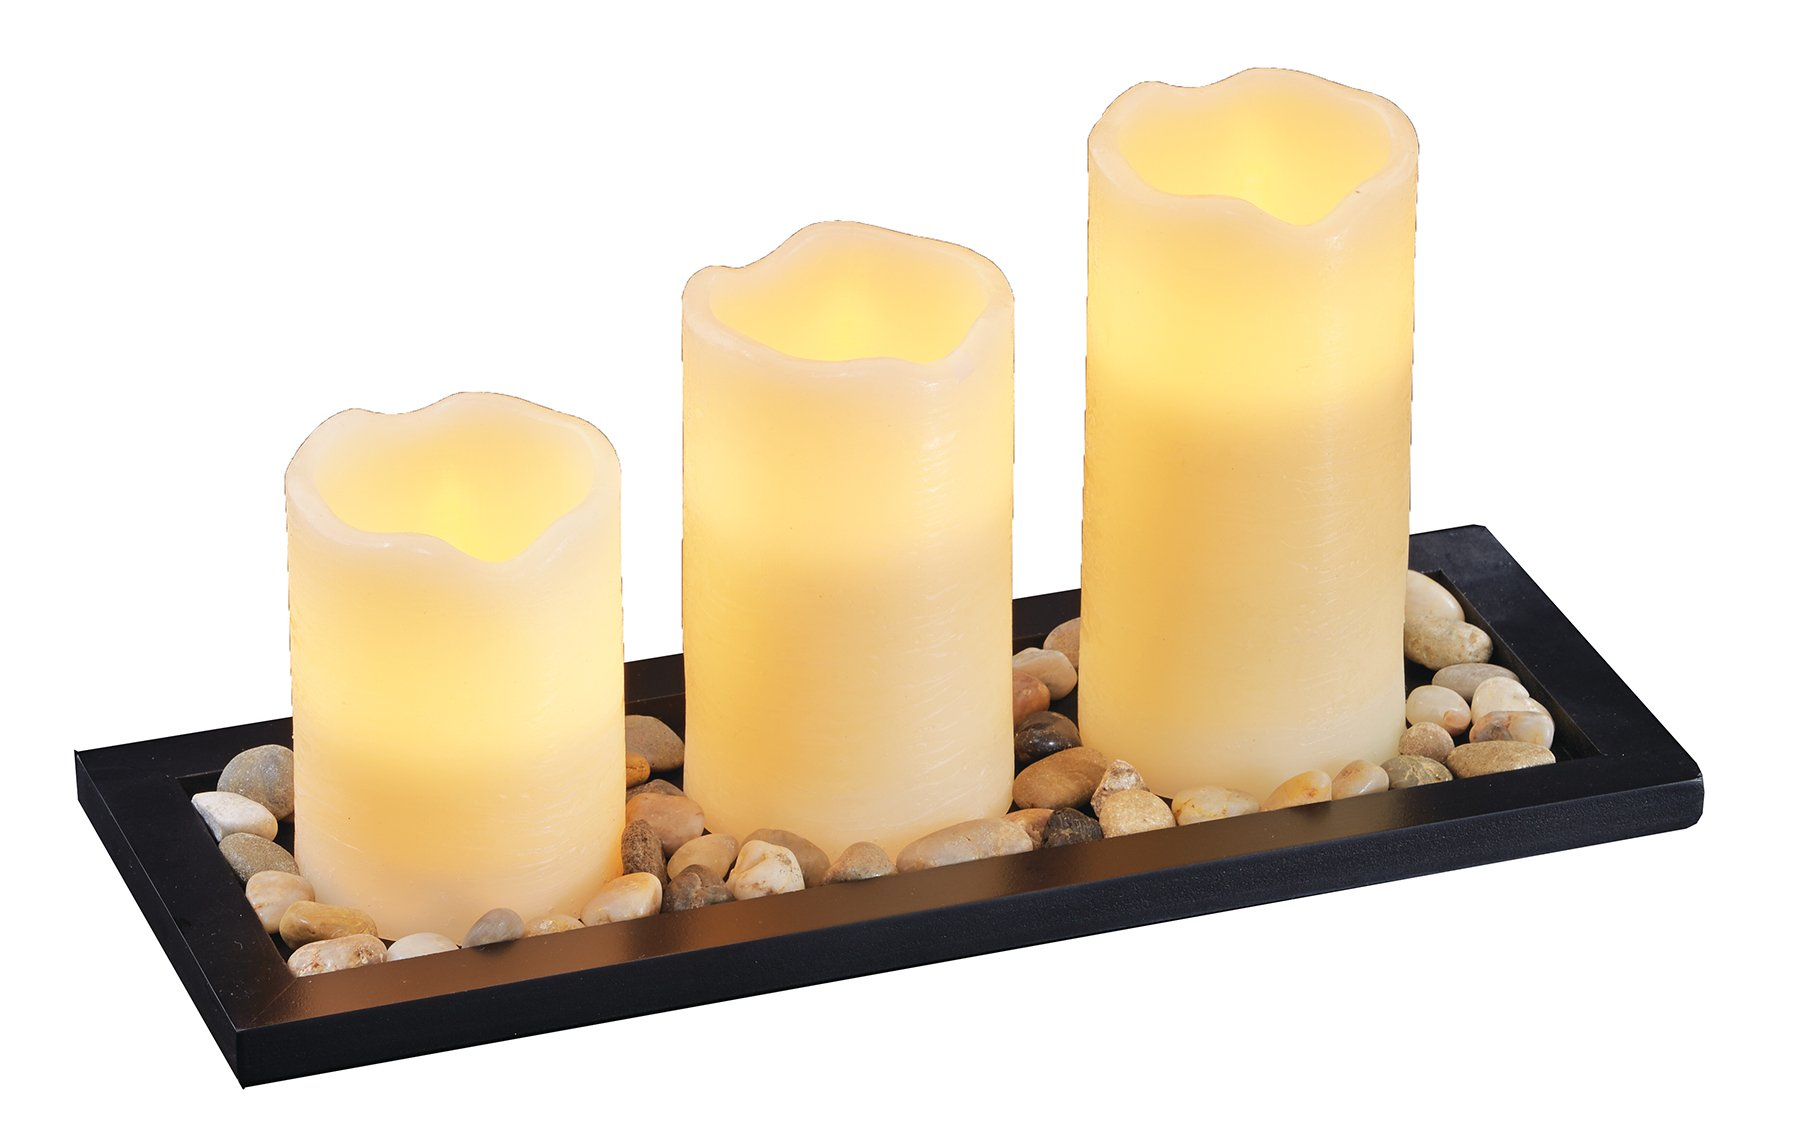 Flameless Pillar Candles, Set of 3 - Safe for Your Family and Pets - Vanilla Scented for Stress-Free Relaxation, Dripless Wax Candles with Wood Tray and Pebbles - Battery Operated Votives